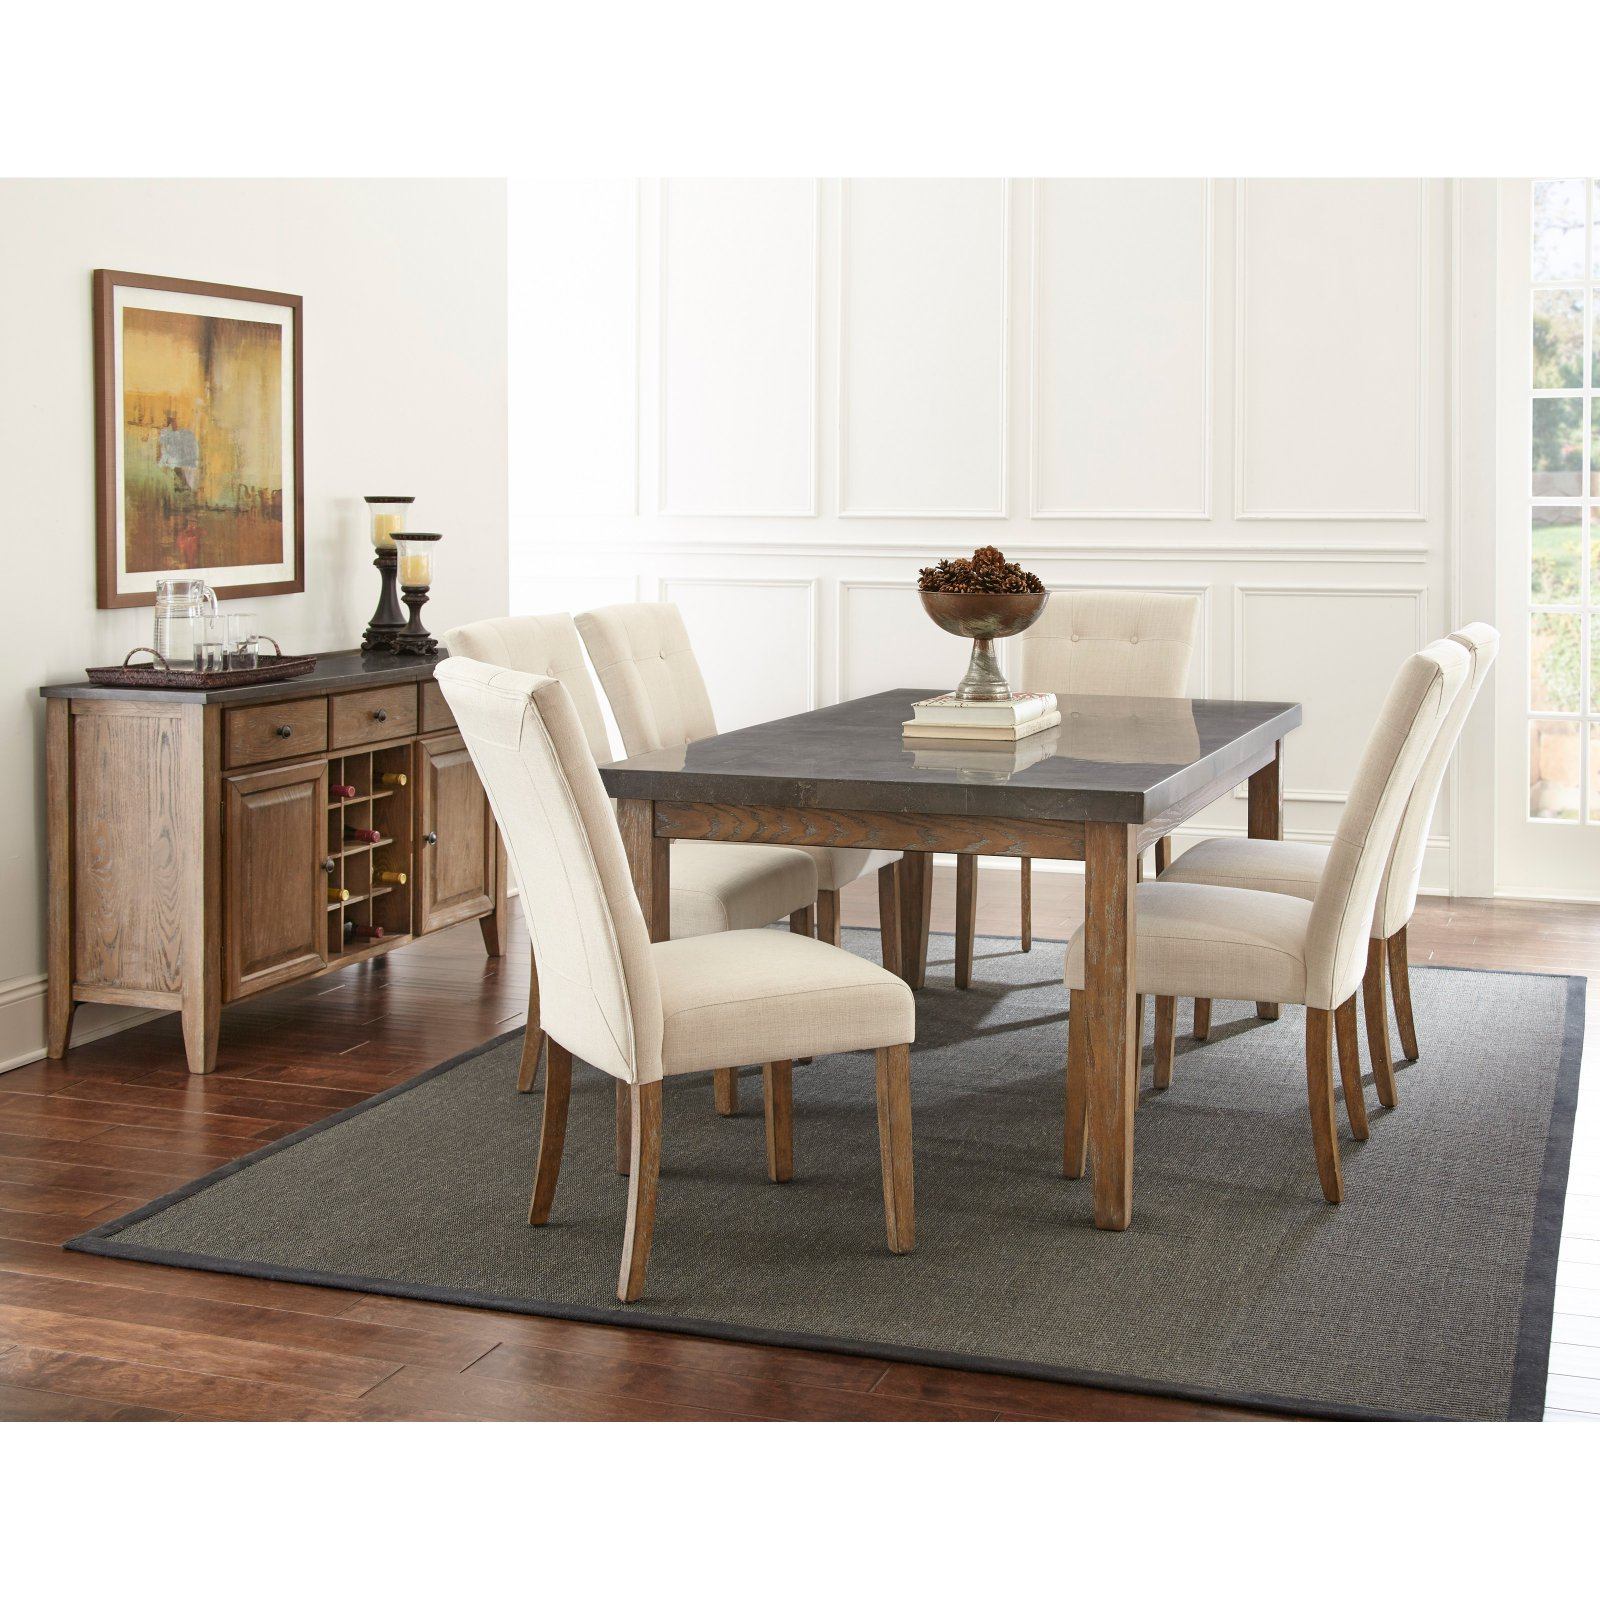 Steve Silver Debby Bluestone Dining Table